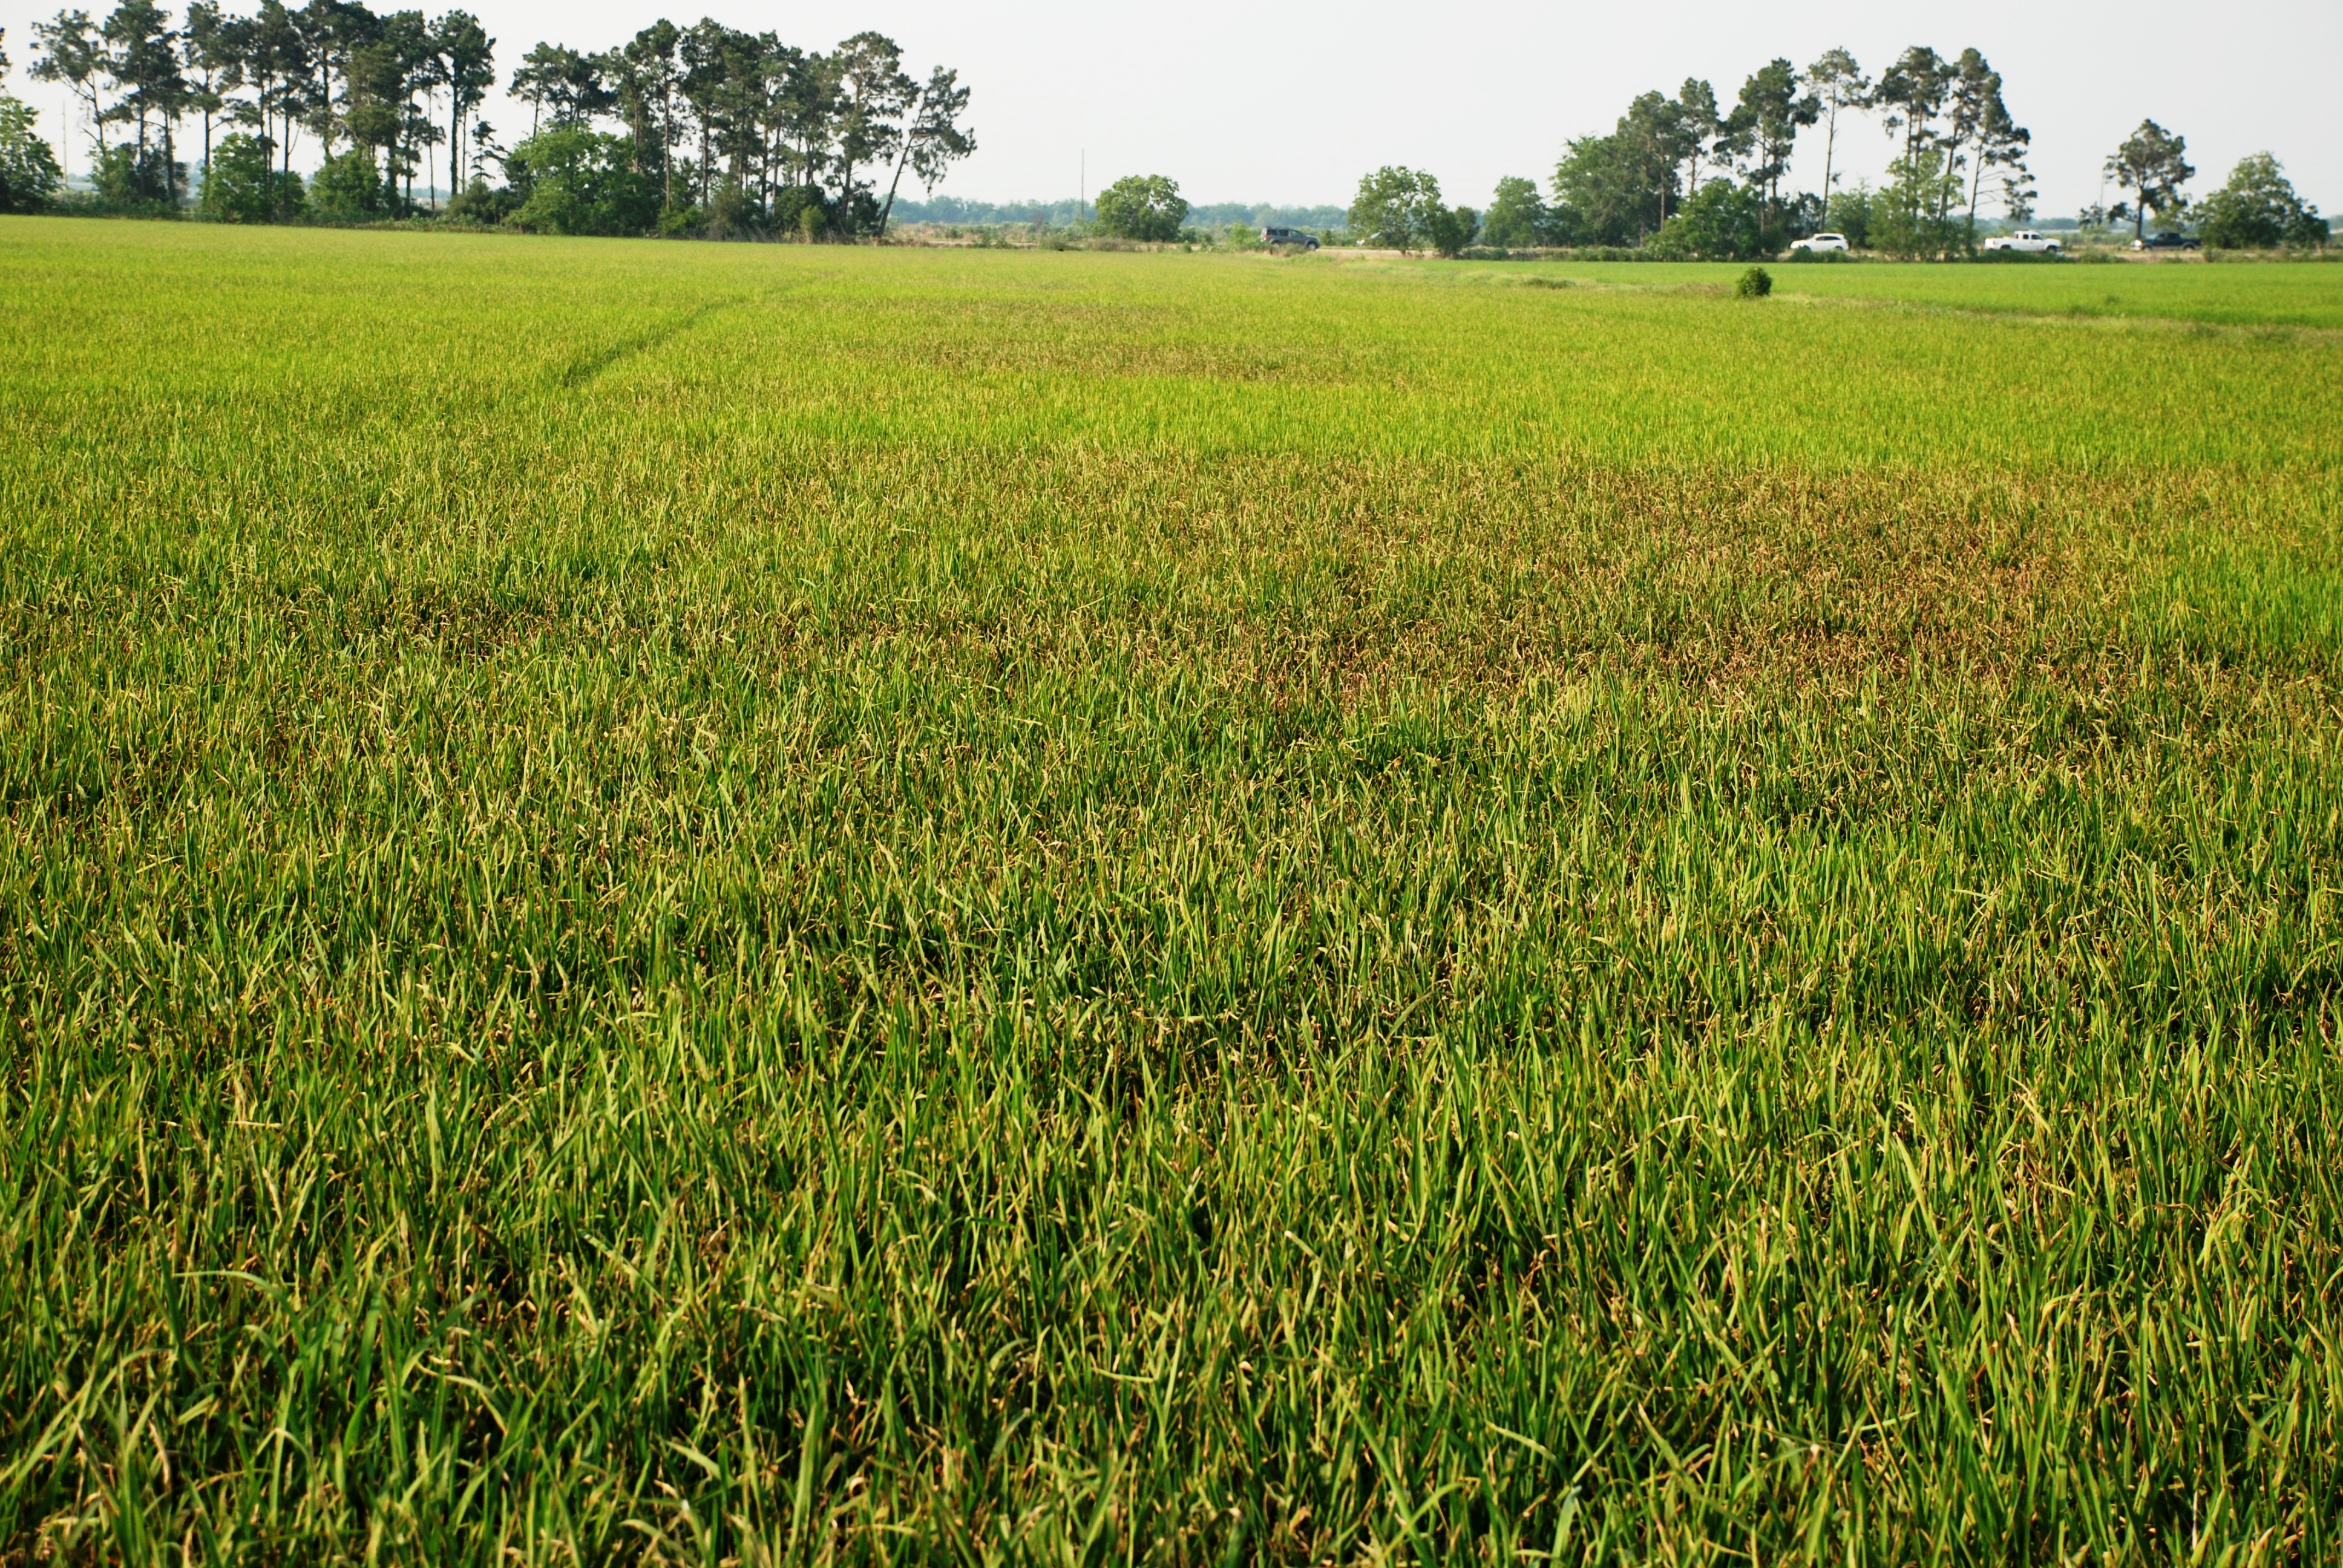 Rice Blast Disease Prevalent in 2012